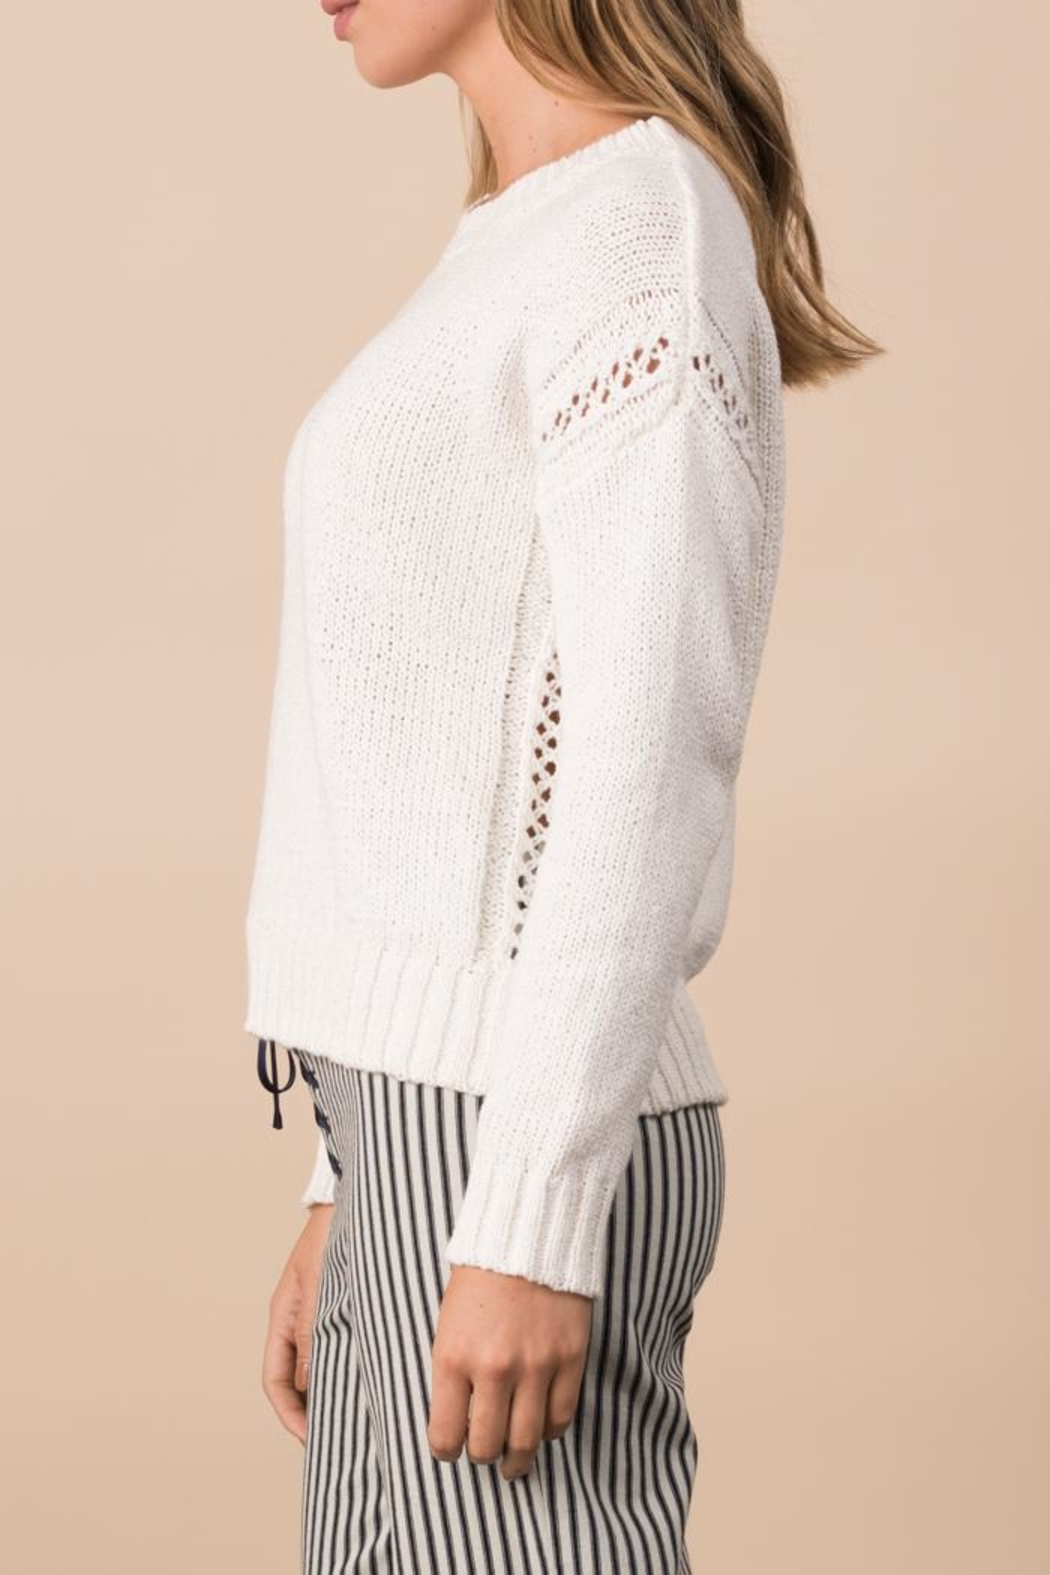 Margaret O'Leary Crimped Cotton Pullover - Front Full Image